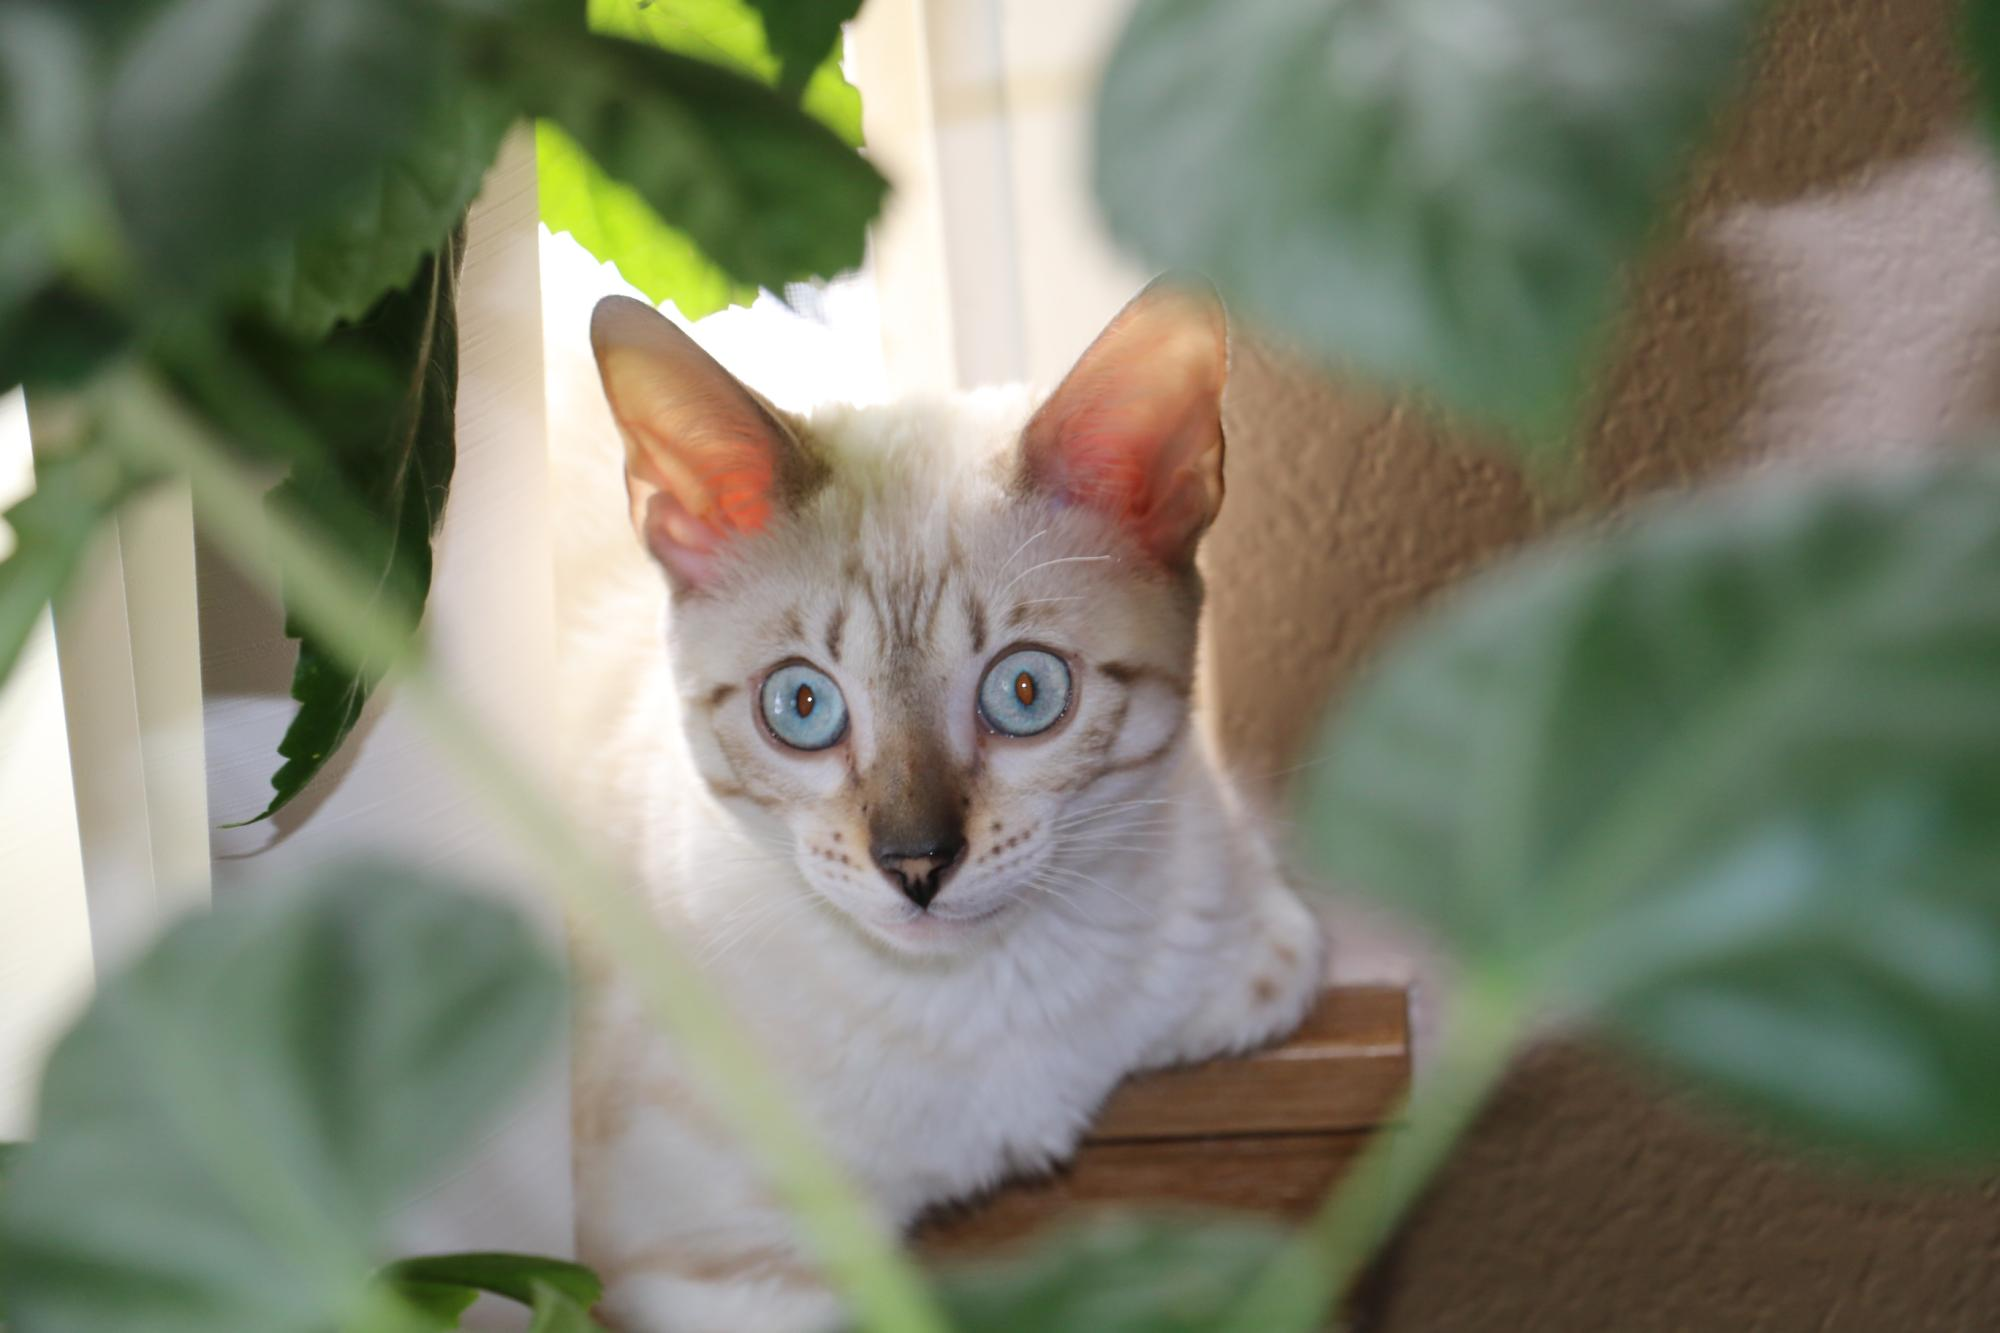 savannah, bengal, kittens, bengal for sale, kittens for sale